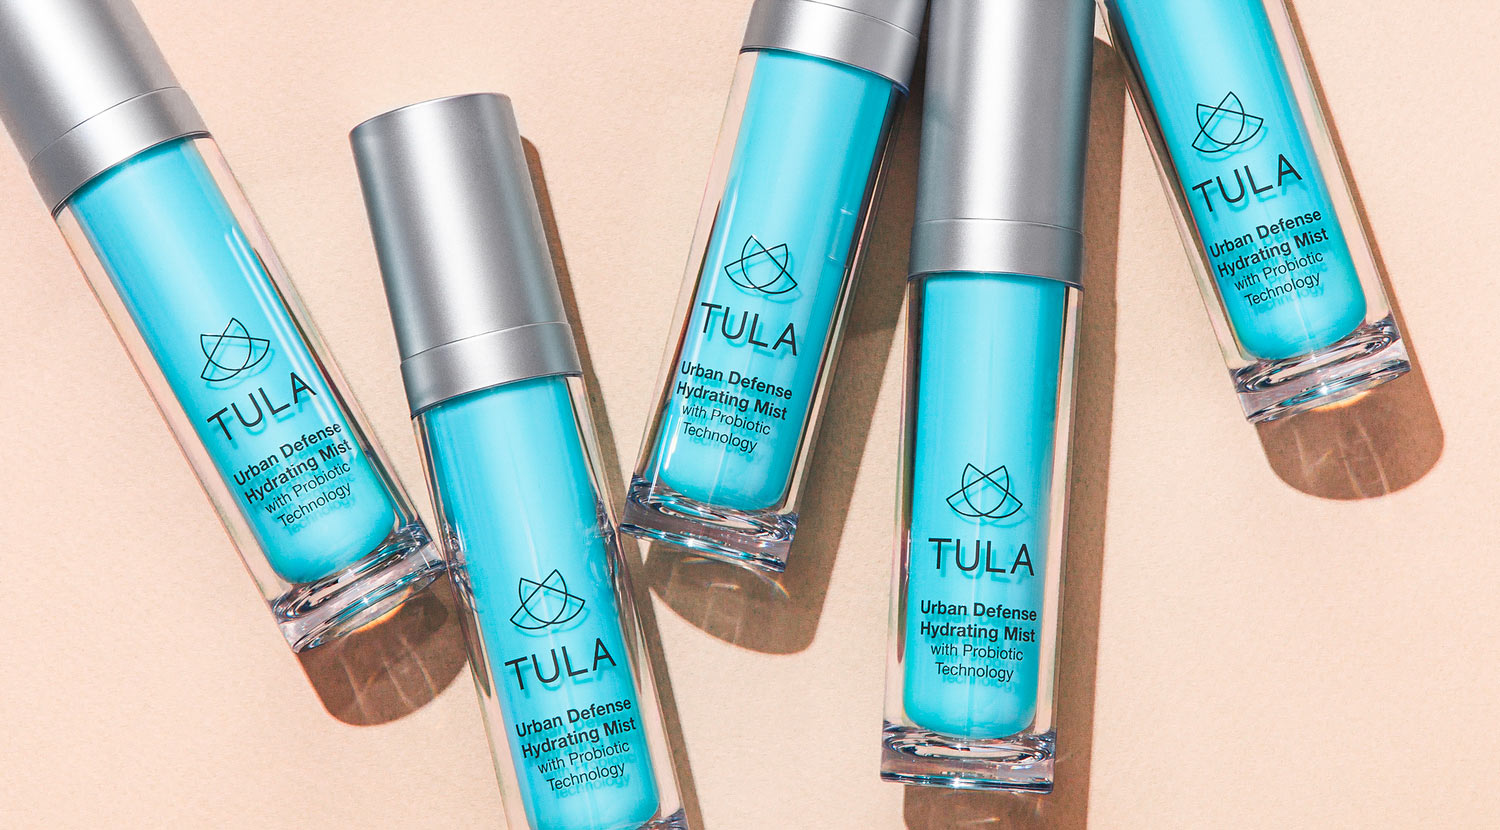 Tula-Face-Mist-Skincare-Beauty